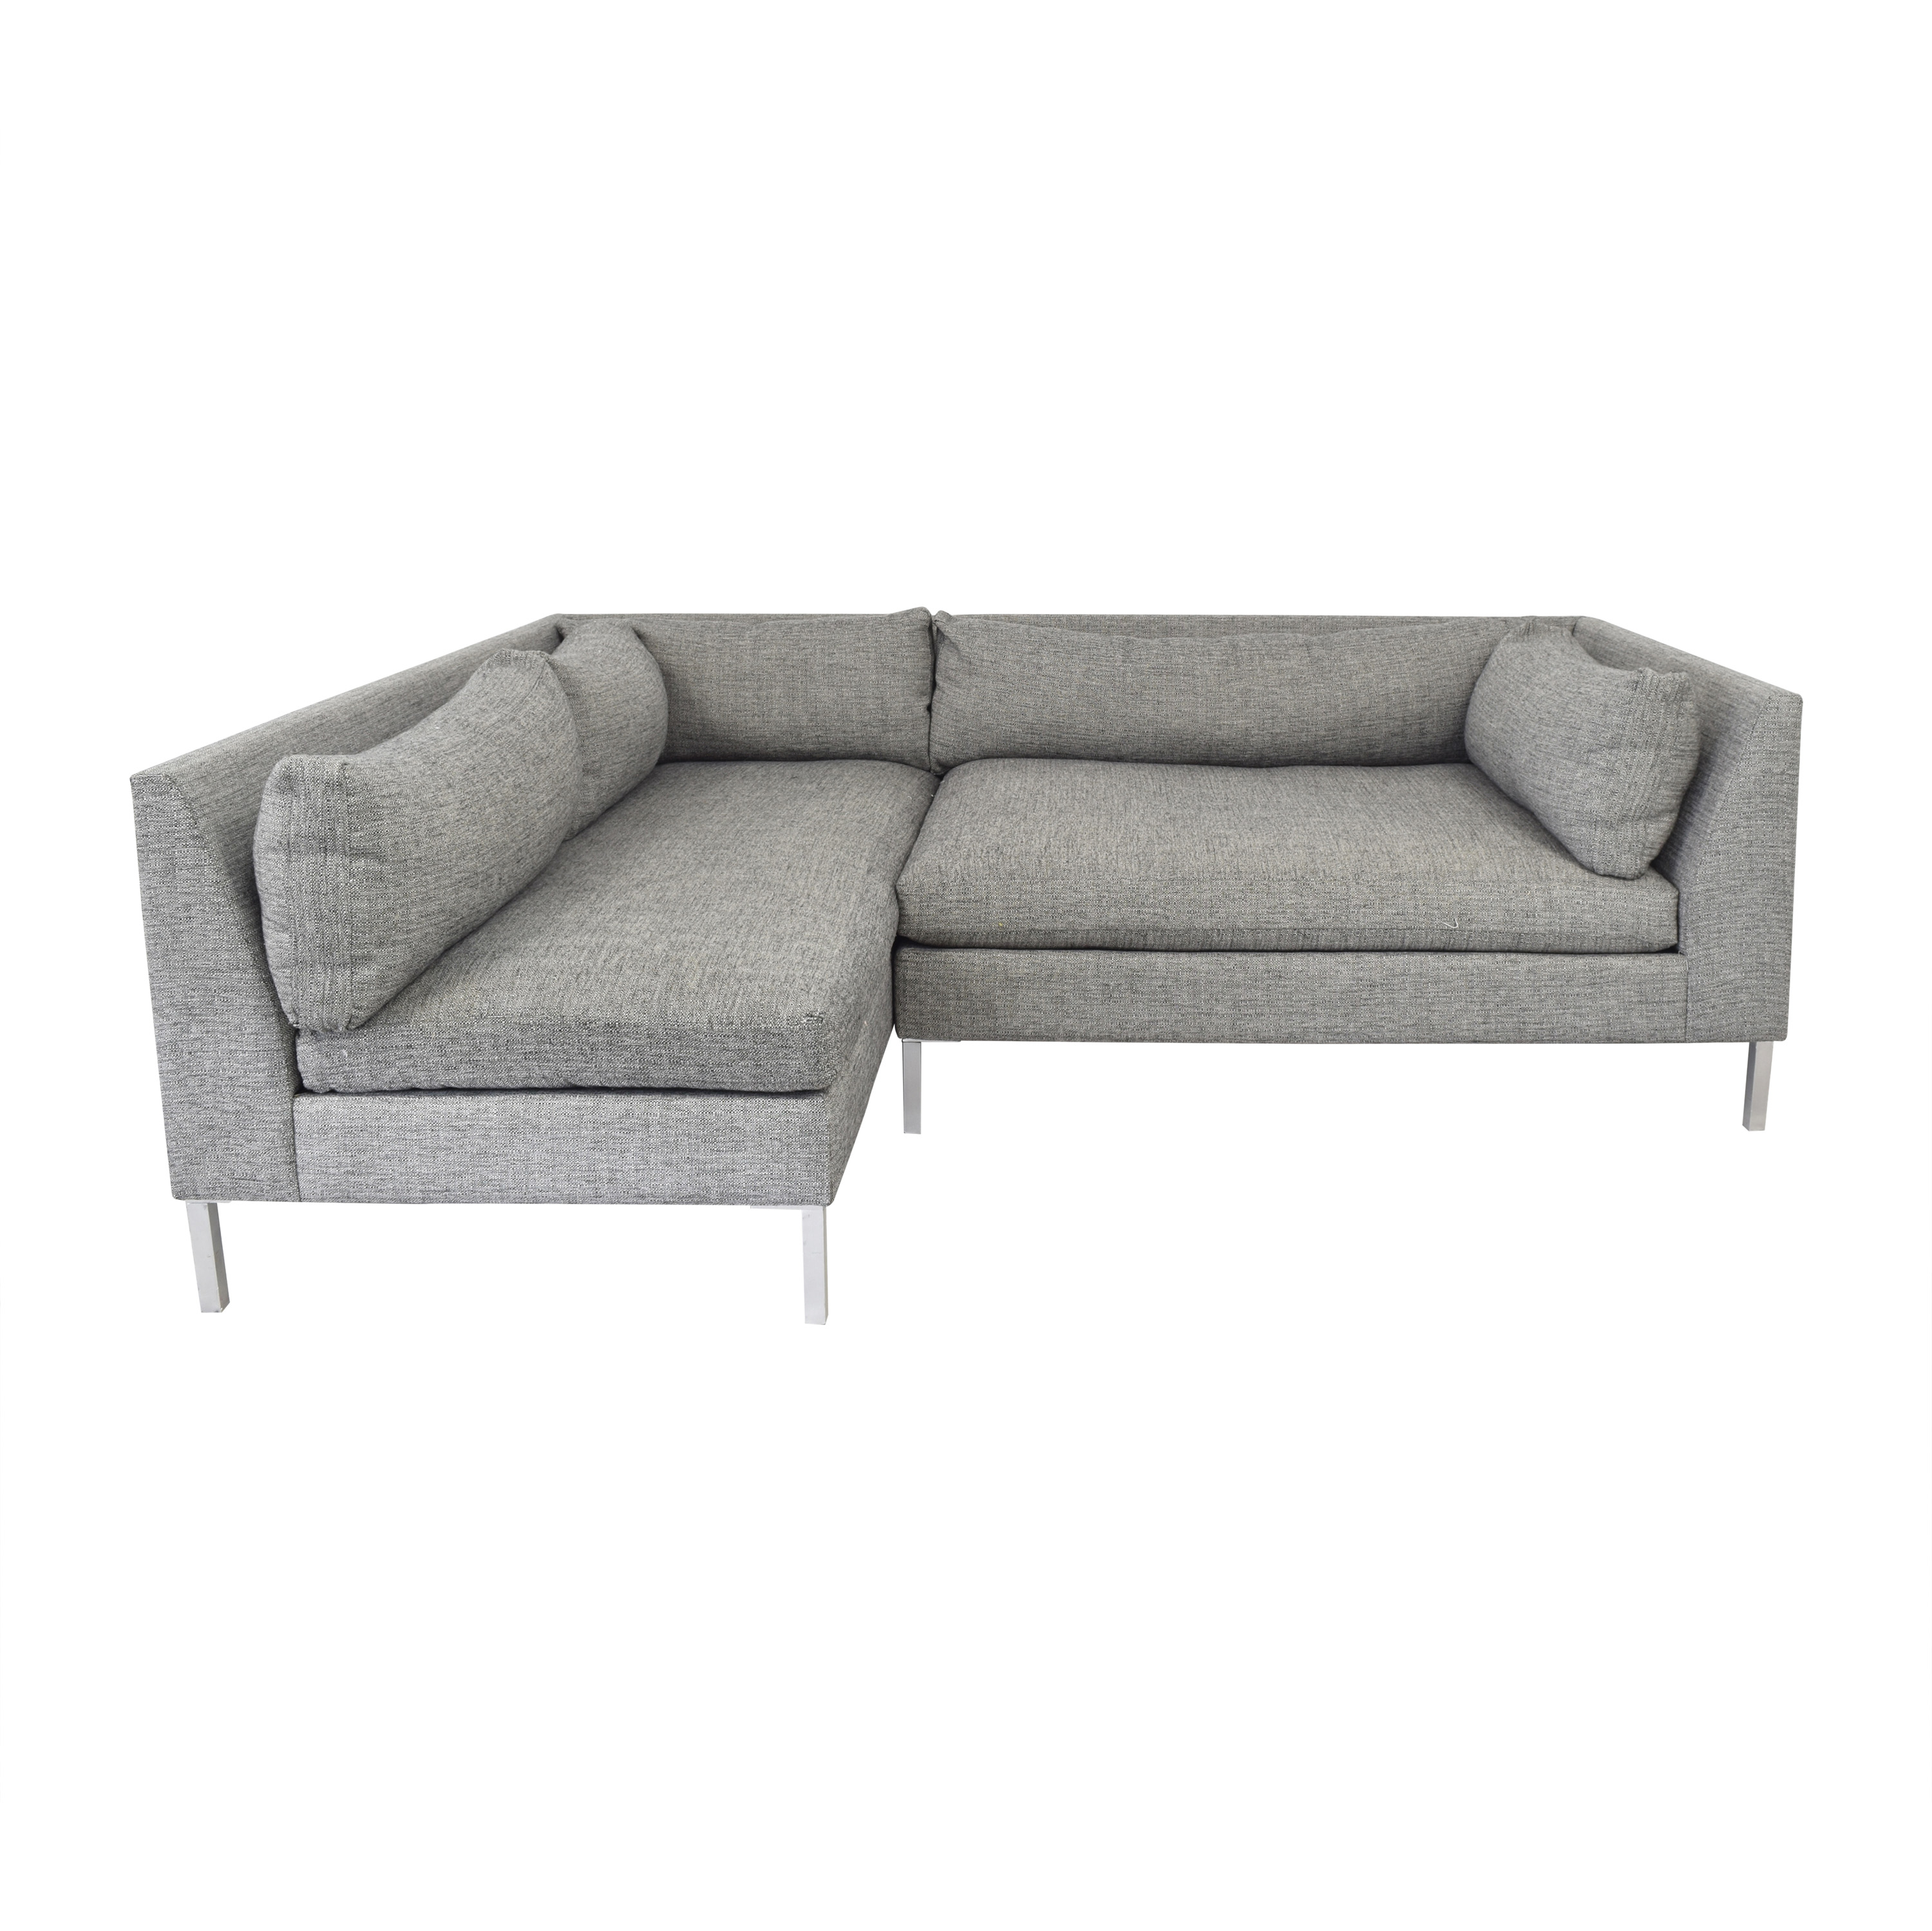 CB2 CB2 Holden 2-Piece Tufted Sectional Sofa price